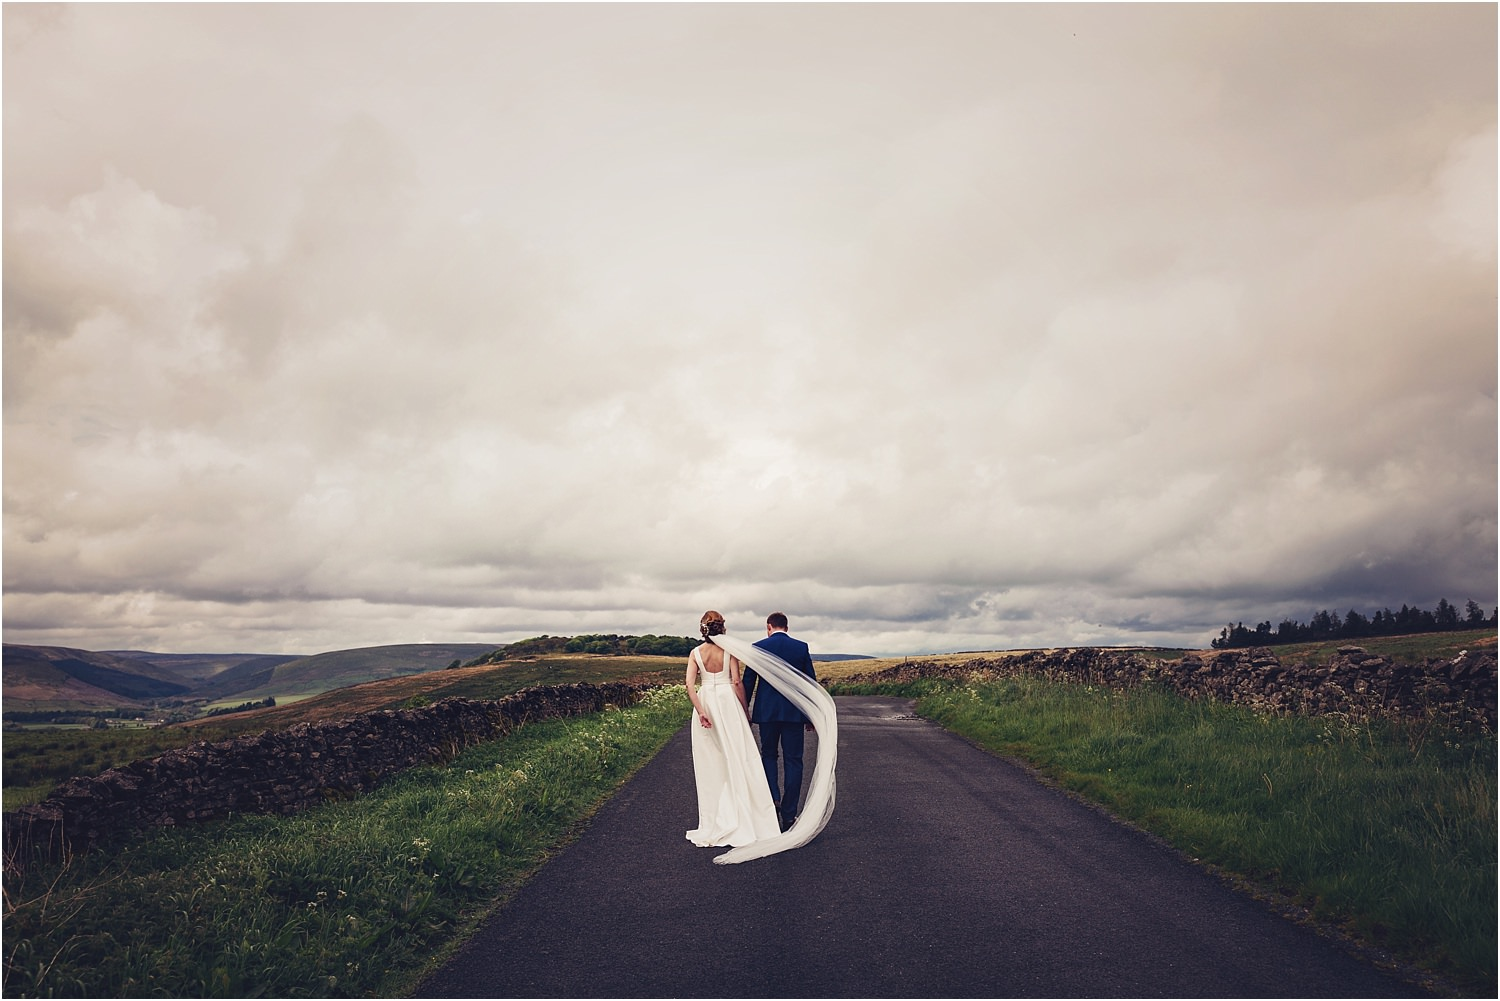 Bride and groom walking along Lancashire lane with Trough of Bowland in the background